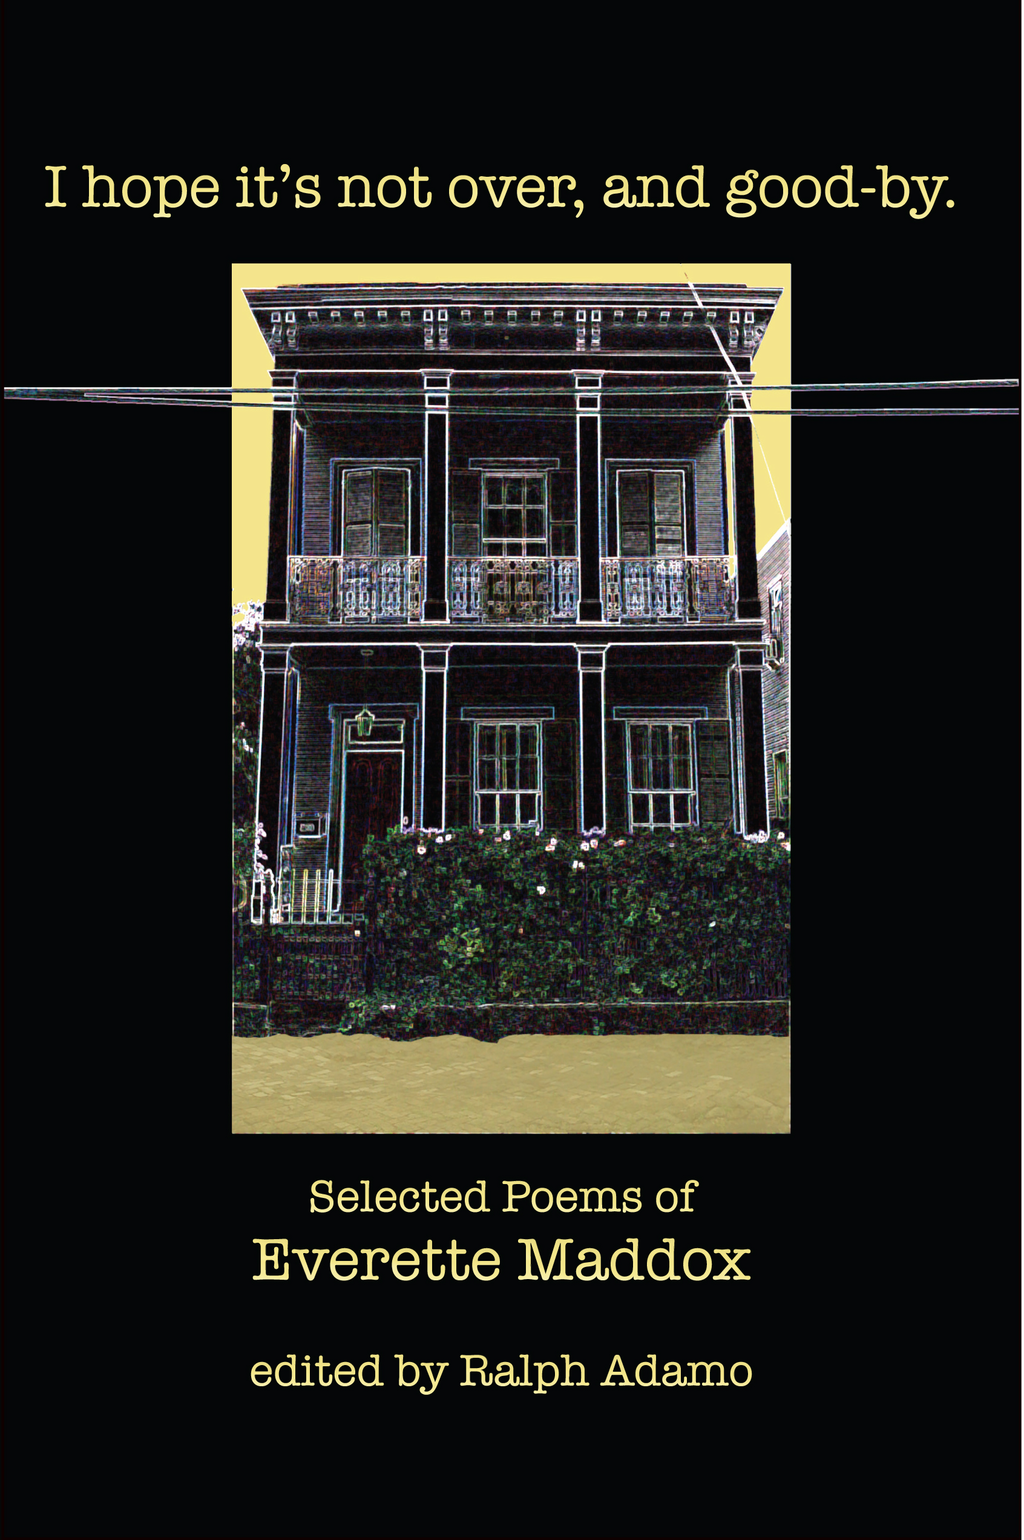 I hope it's not over, and good-by.: Selected Poems of Everett Maddox